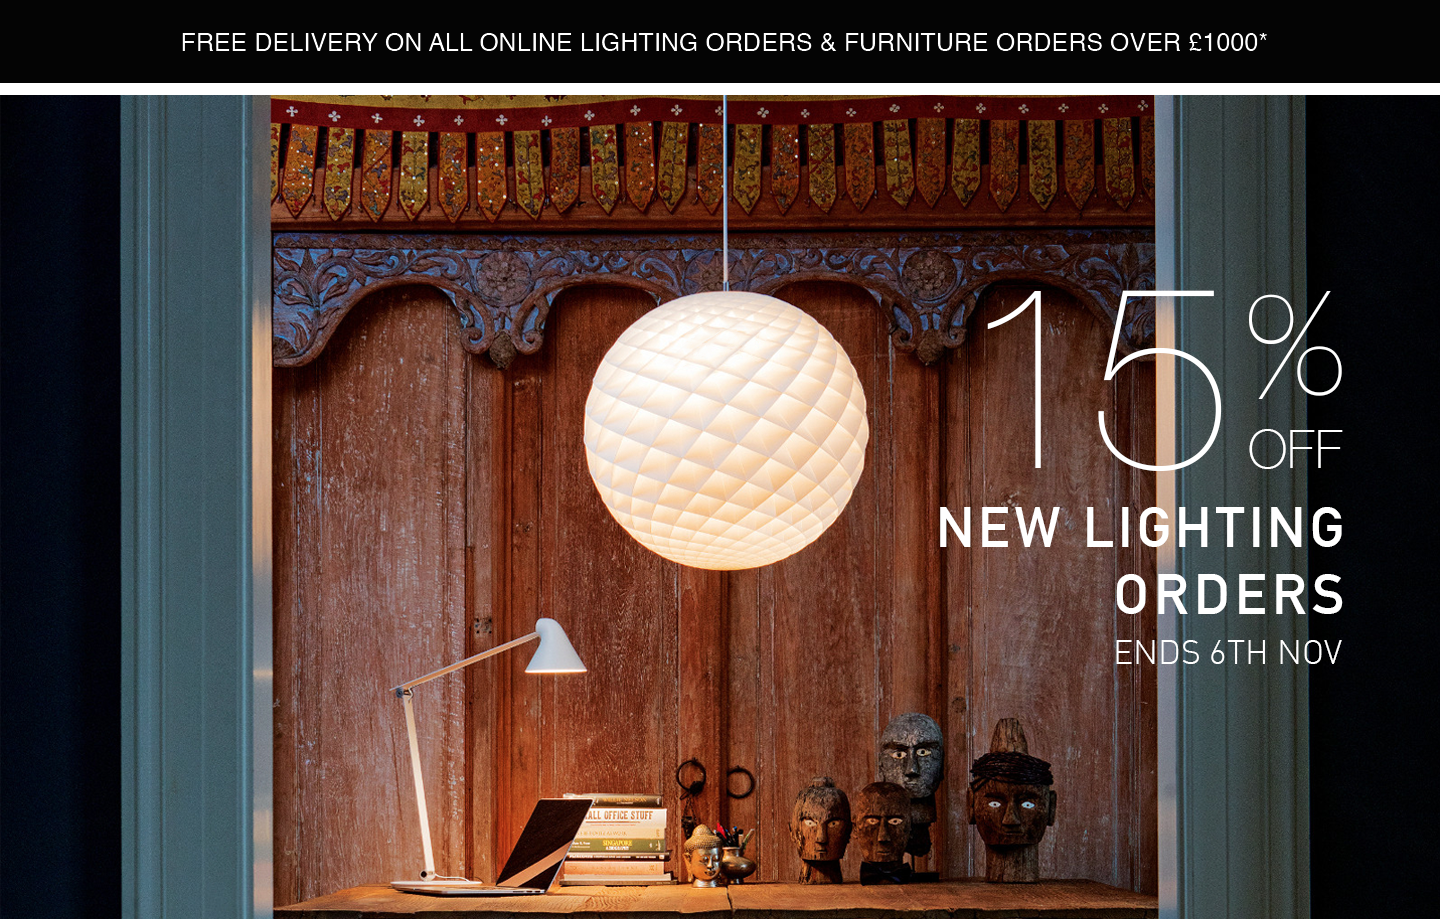 15% OFF NEW LIGHTING ORDERS - ENDS 6TH OF NOVEMBER